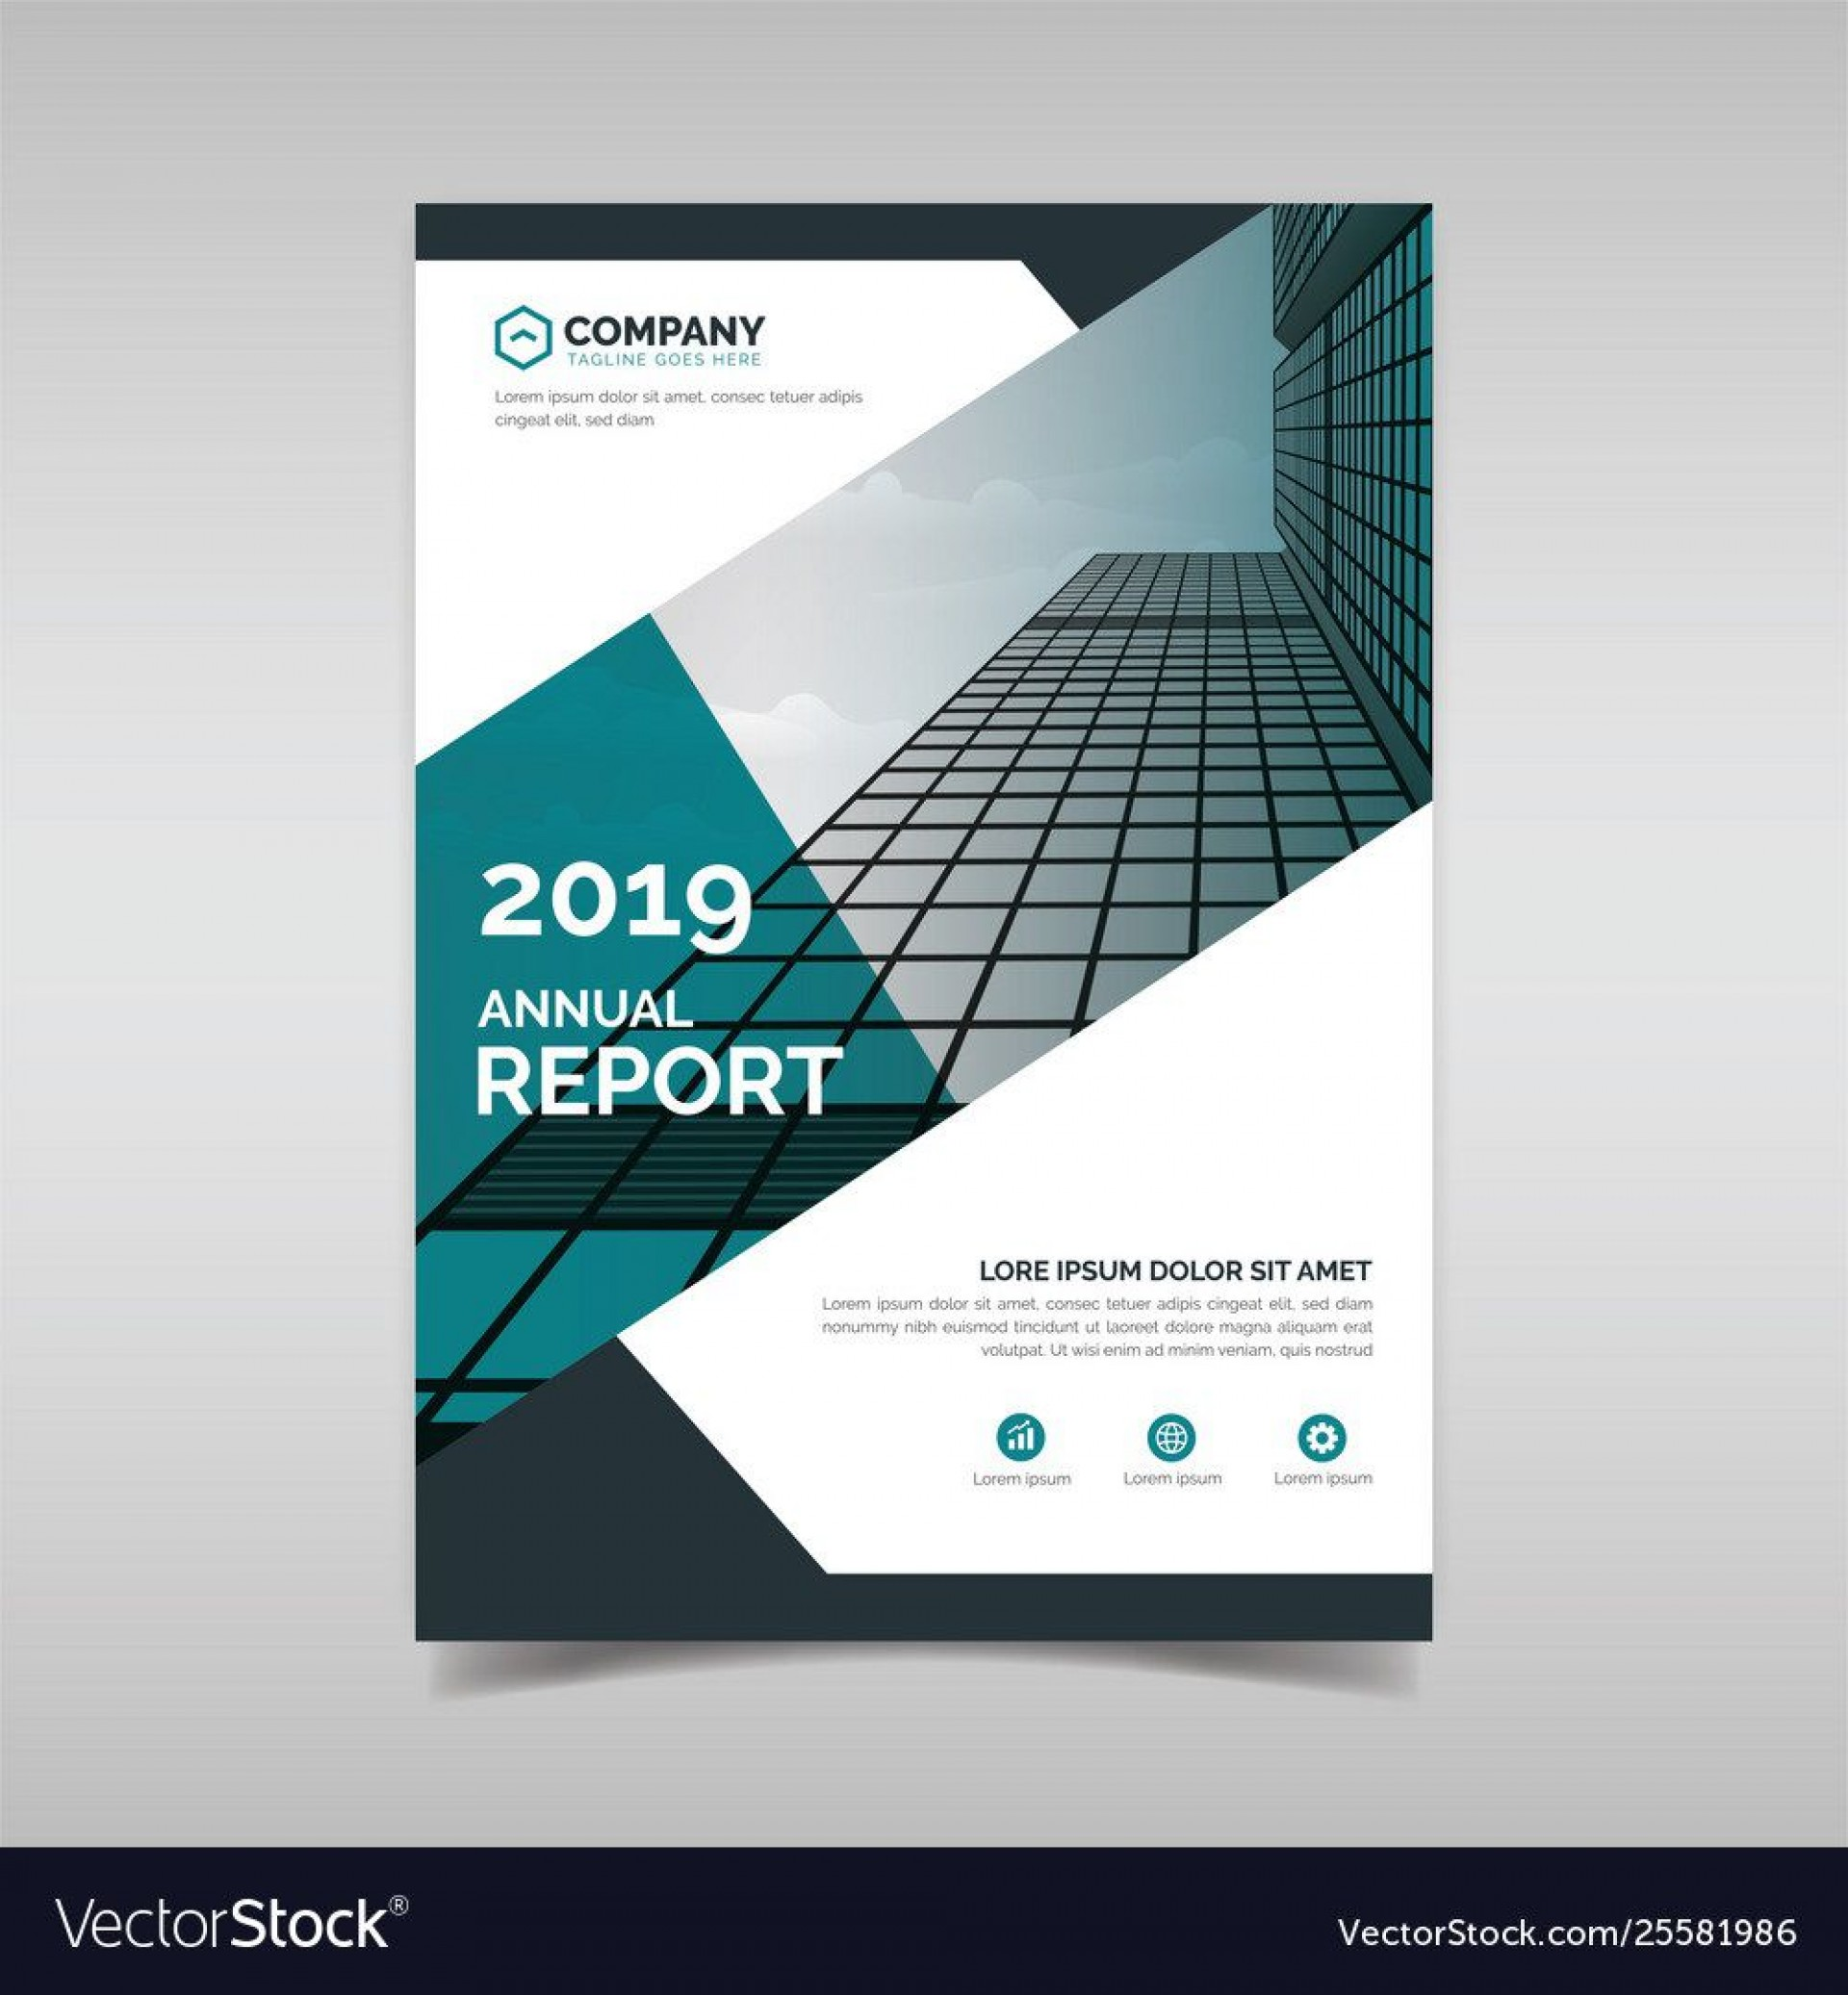 004 Imposing Free Download Annual Report Cover Design Template High Resolution  Page In Word1920